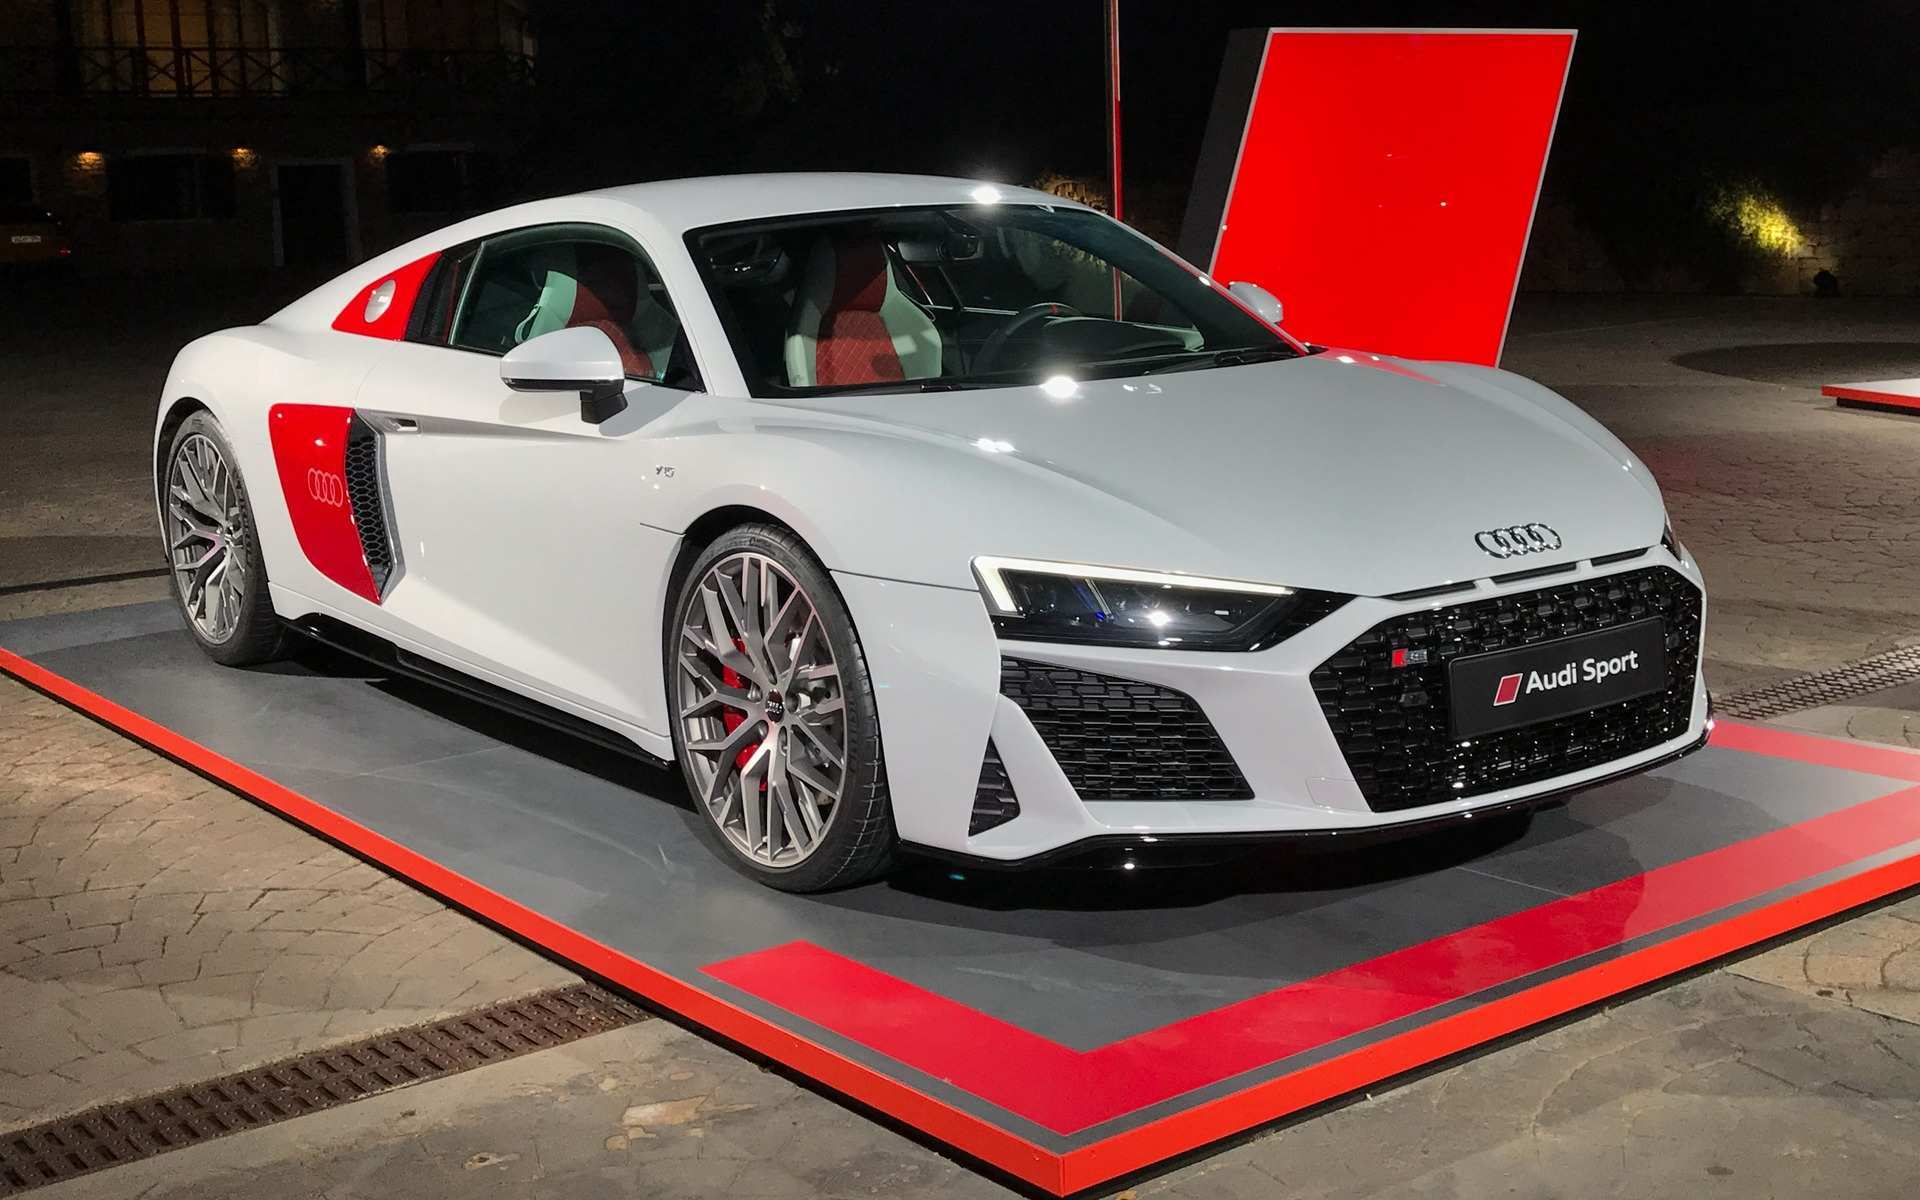 88 All New 2020 Audi R8 V10 Performance Concept with 2020 Audi R8 V10 Performance